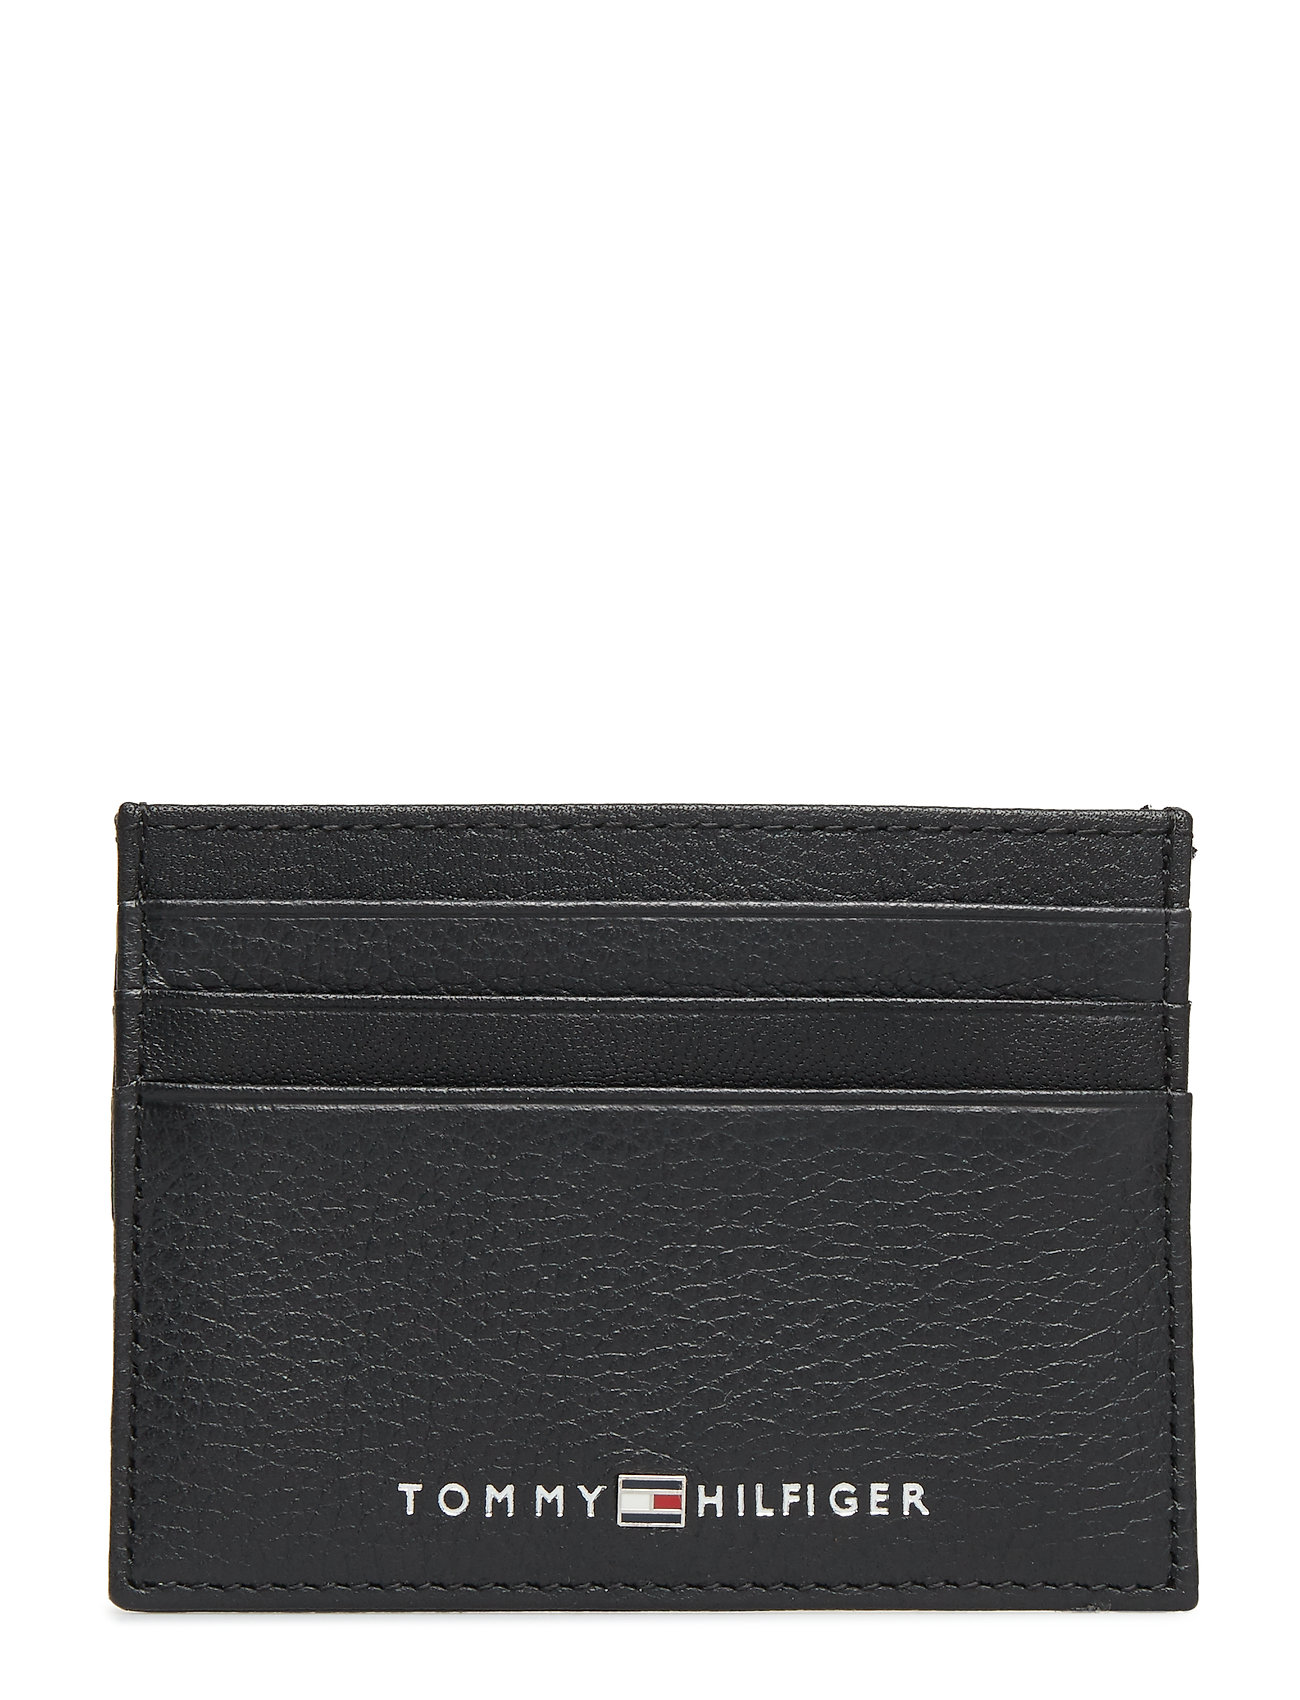 Tommy Hilfiger TH DOWNTOWN CC HOLDER